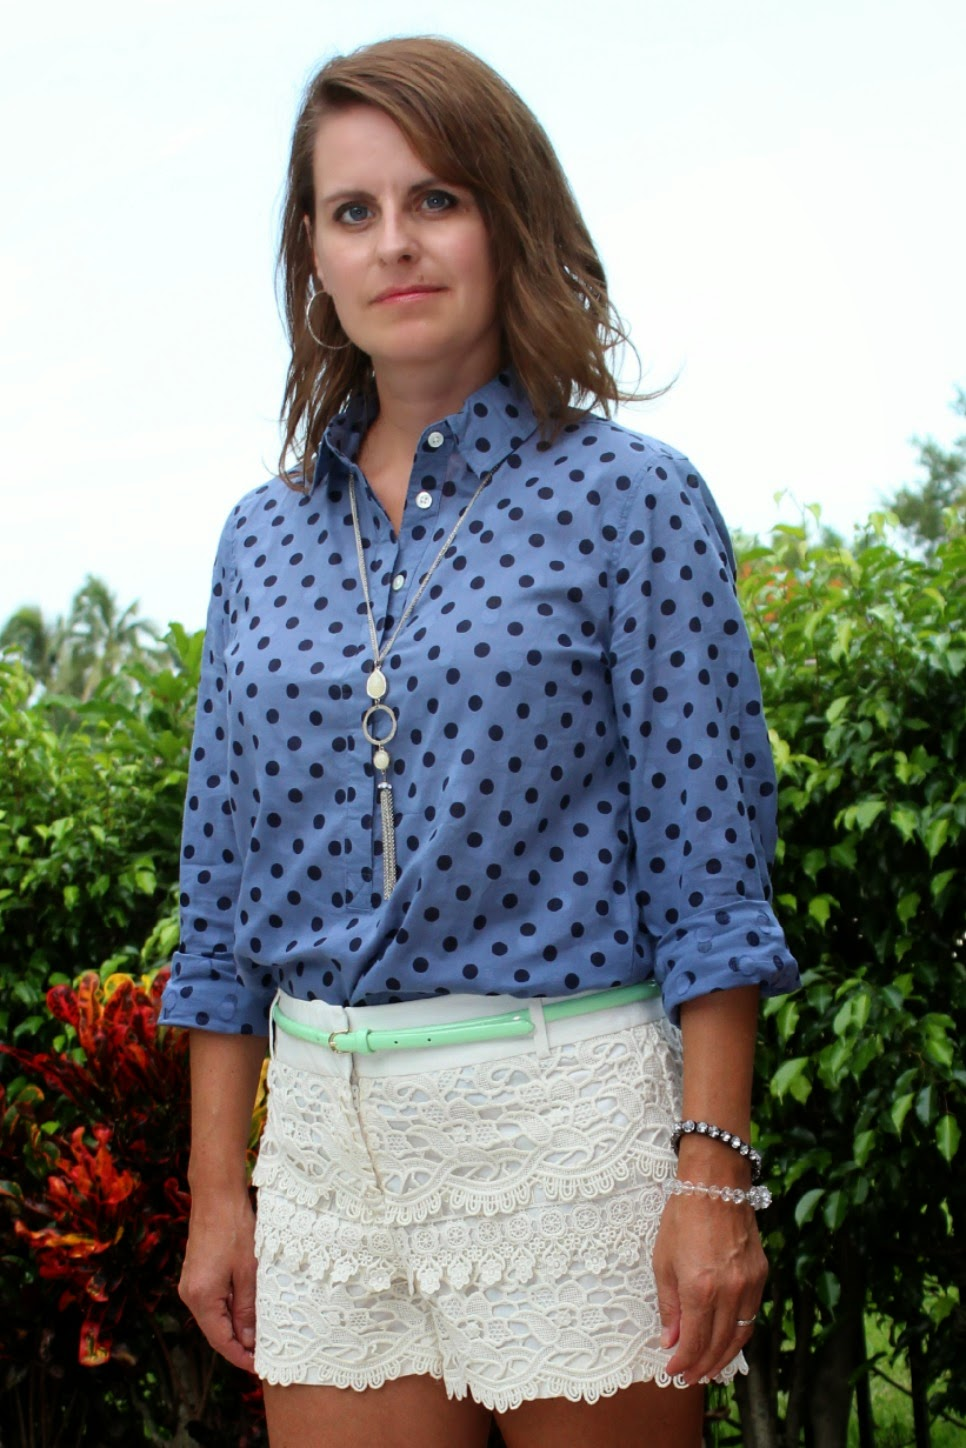 J. Crew Polka dot popover, lace tiered shorts, cork wedges, mint green belt